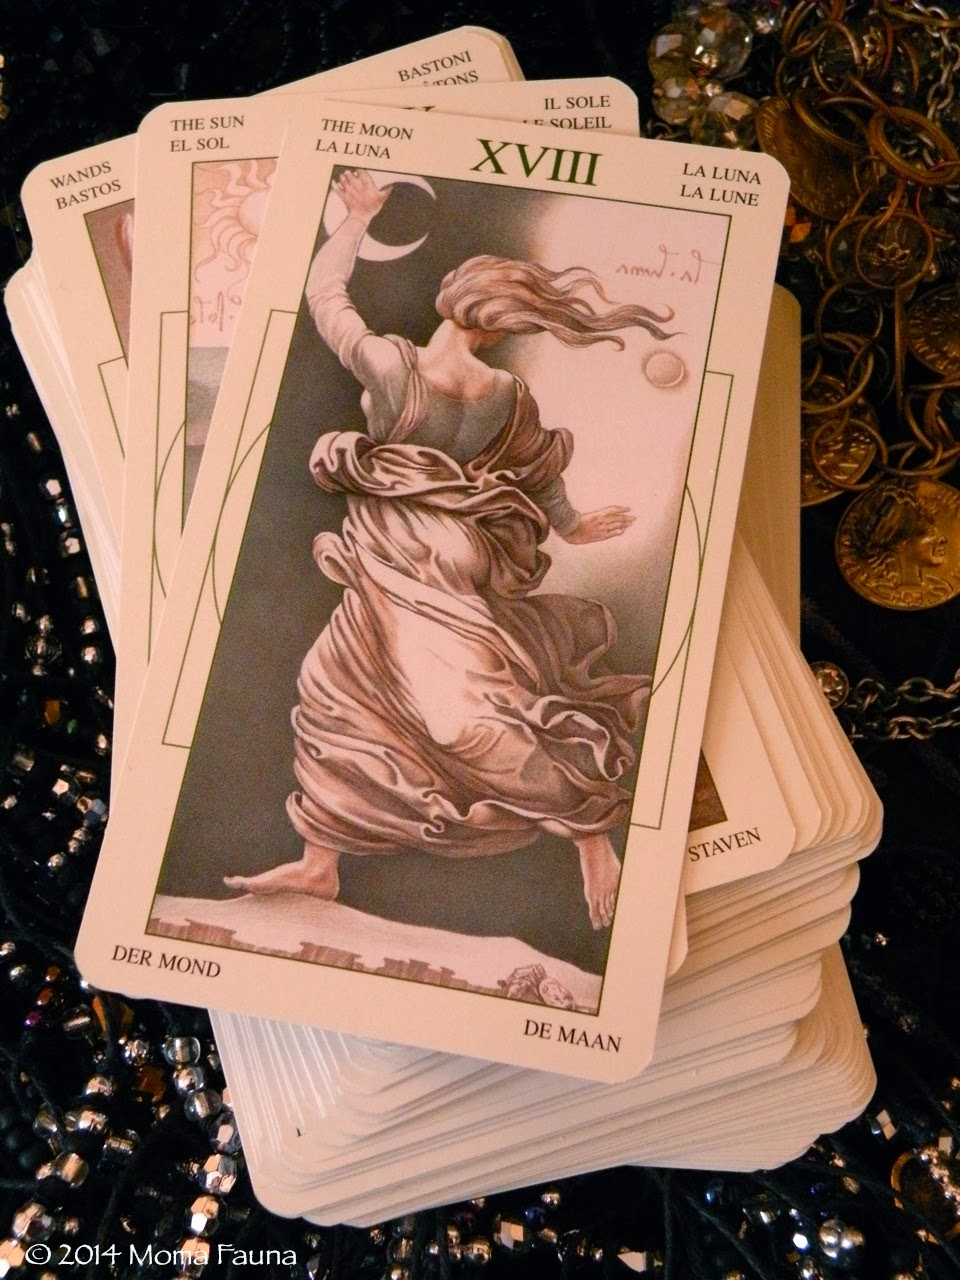 XVII The Moon/La Luna, from the DaVinci Tarot, developed by McElroy, Ghiuselev & Atanassov & published by Lo Scarabeo.